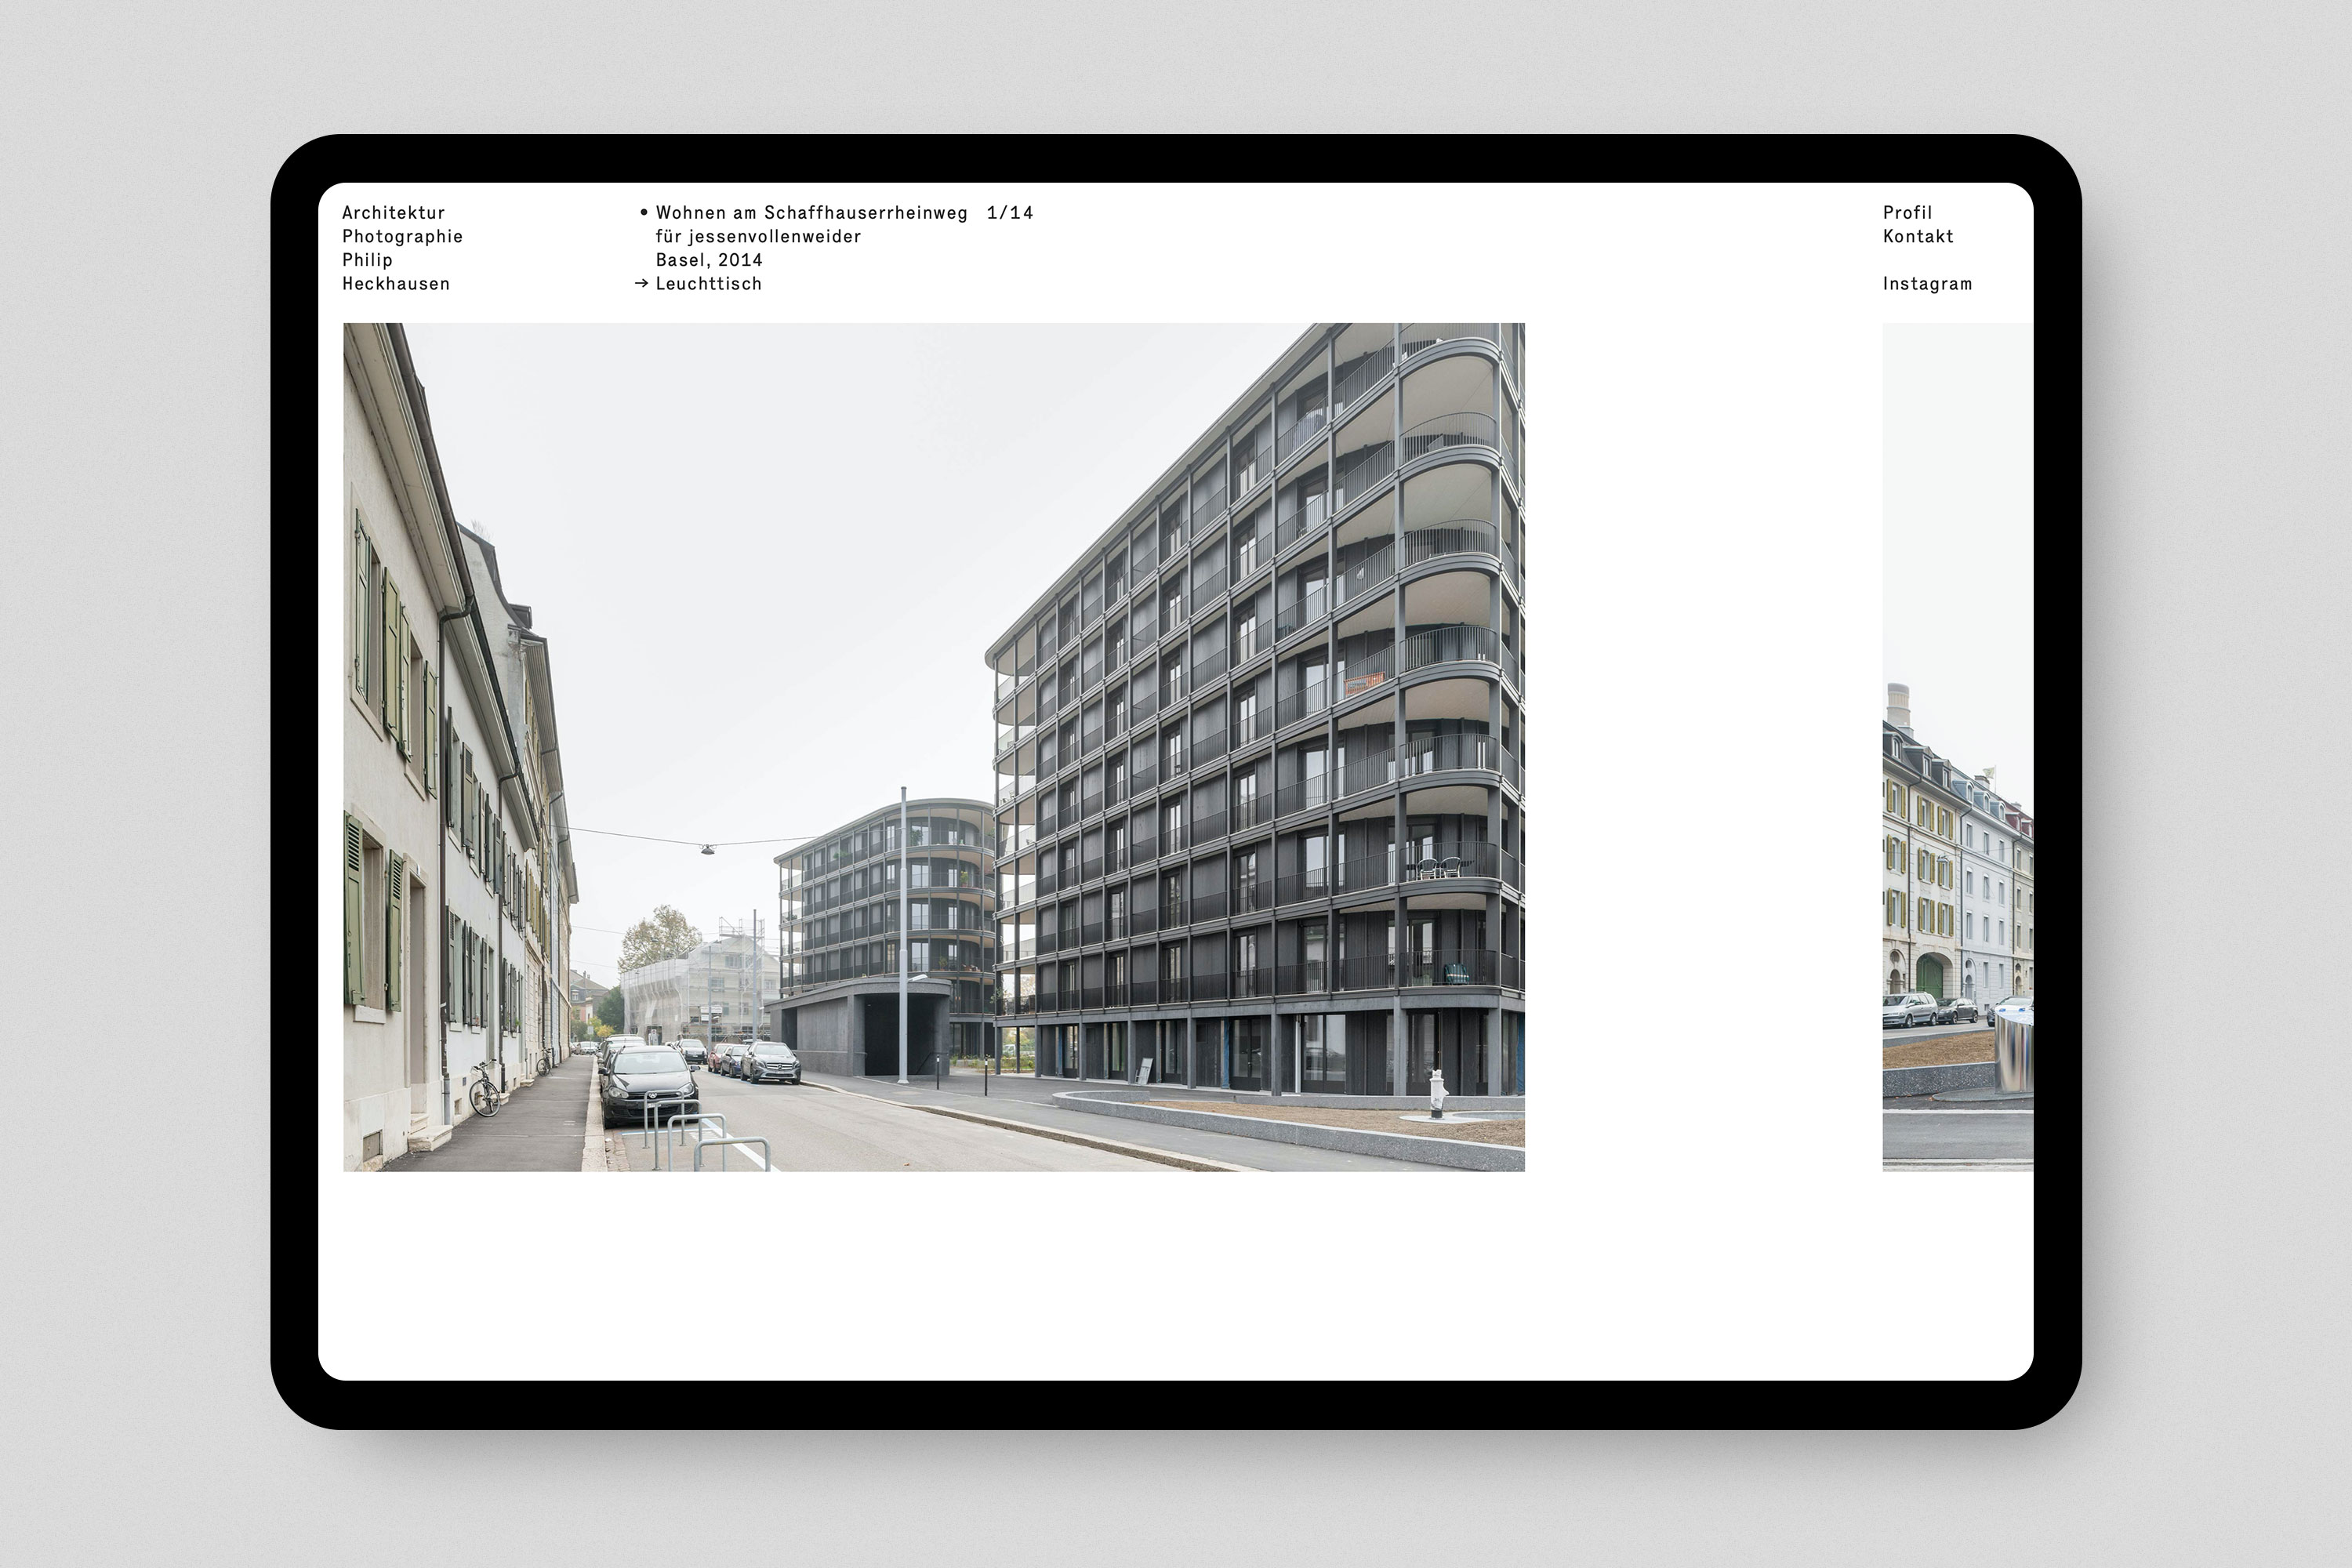 Philip Heckhausen Architektur Photographie